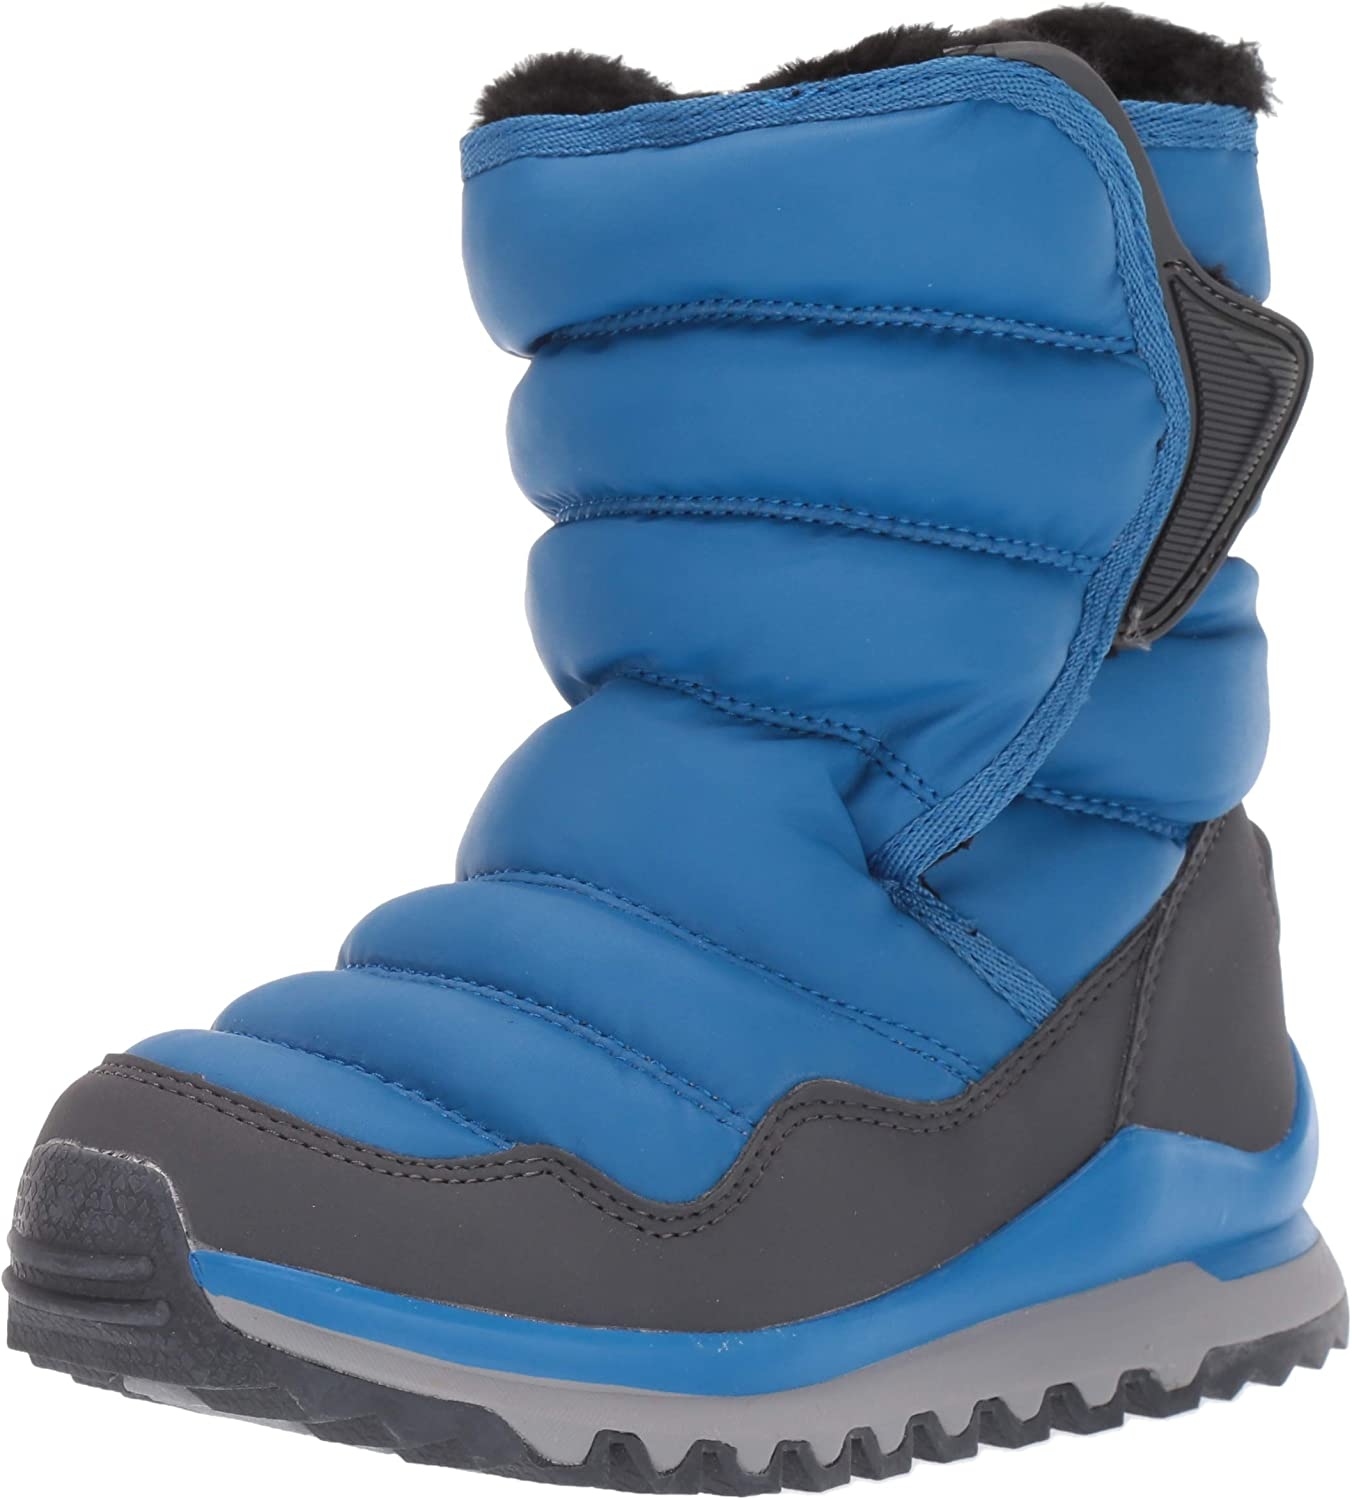 cH2O Kids Alpina 137 All Weather Snow Boots, Sky Diver, 6 US Unisex Toddler